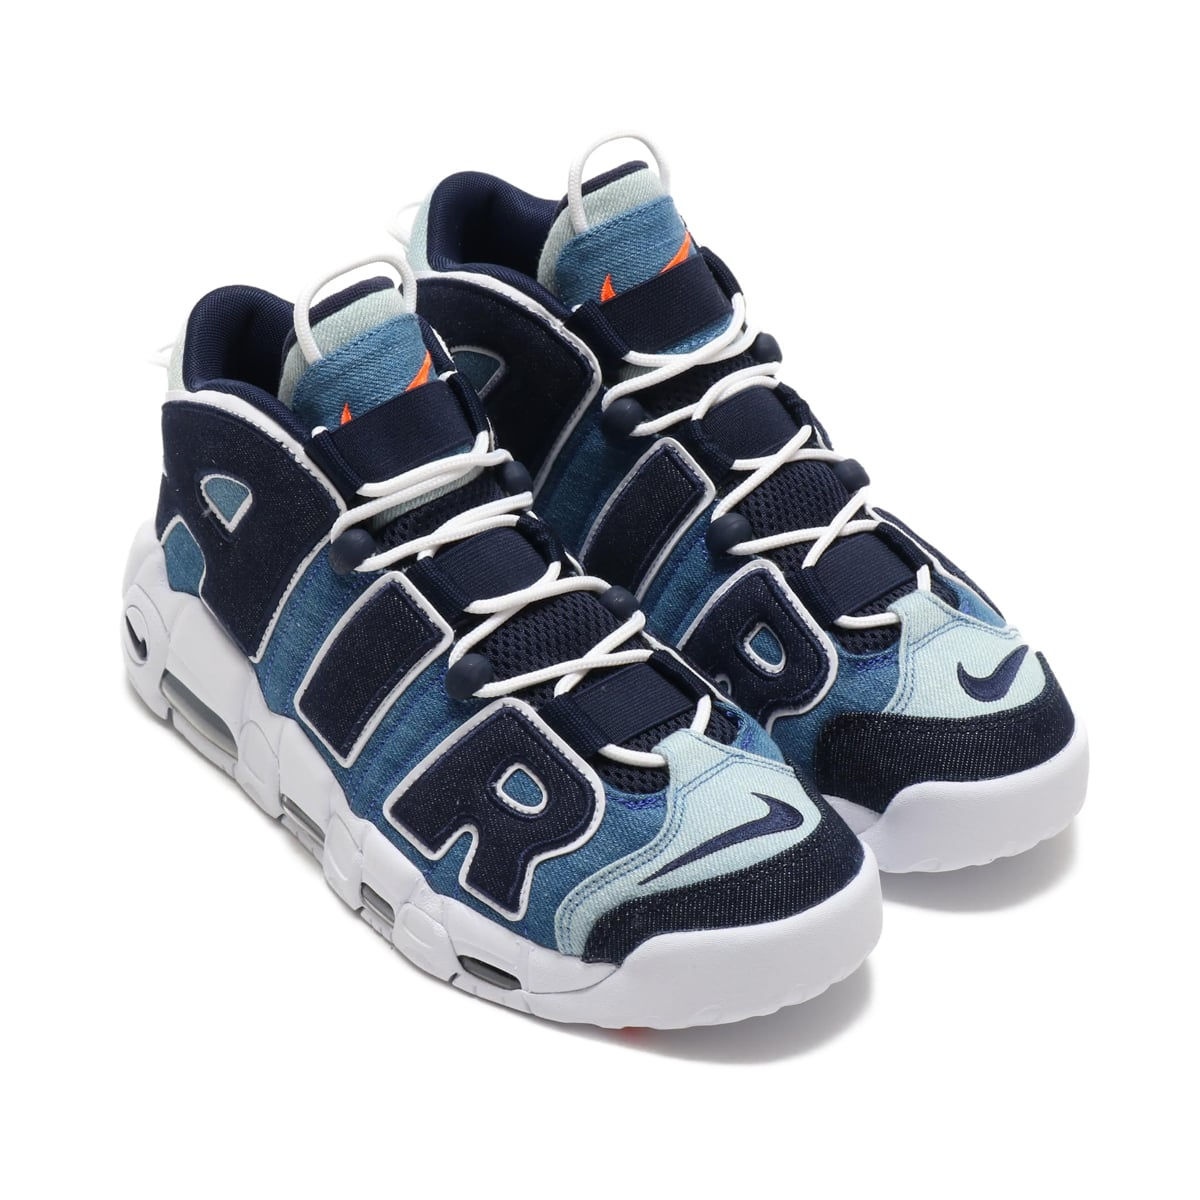 NIKE AIR MORE UPTEMPO 96 QS WHITE/OBSIDIAN-TOTAL ORANGE 19FA-S_photo_large